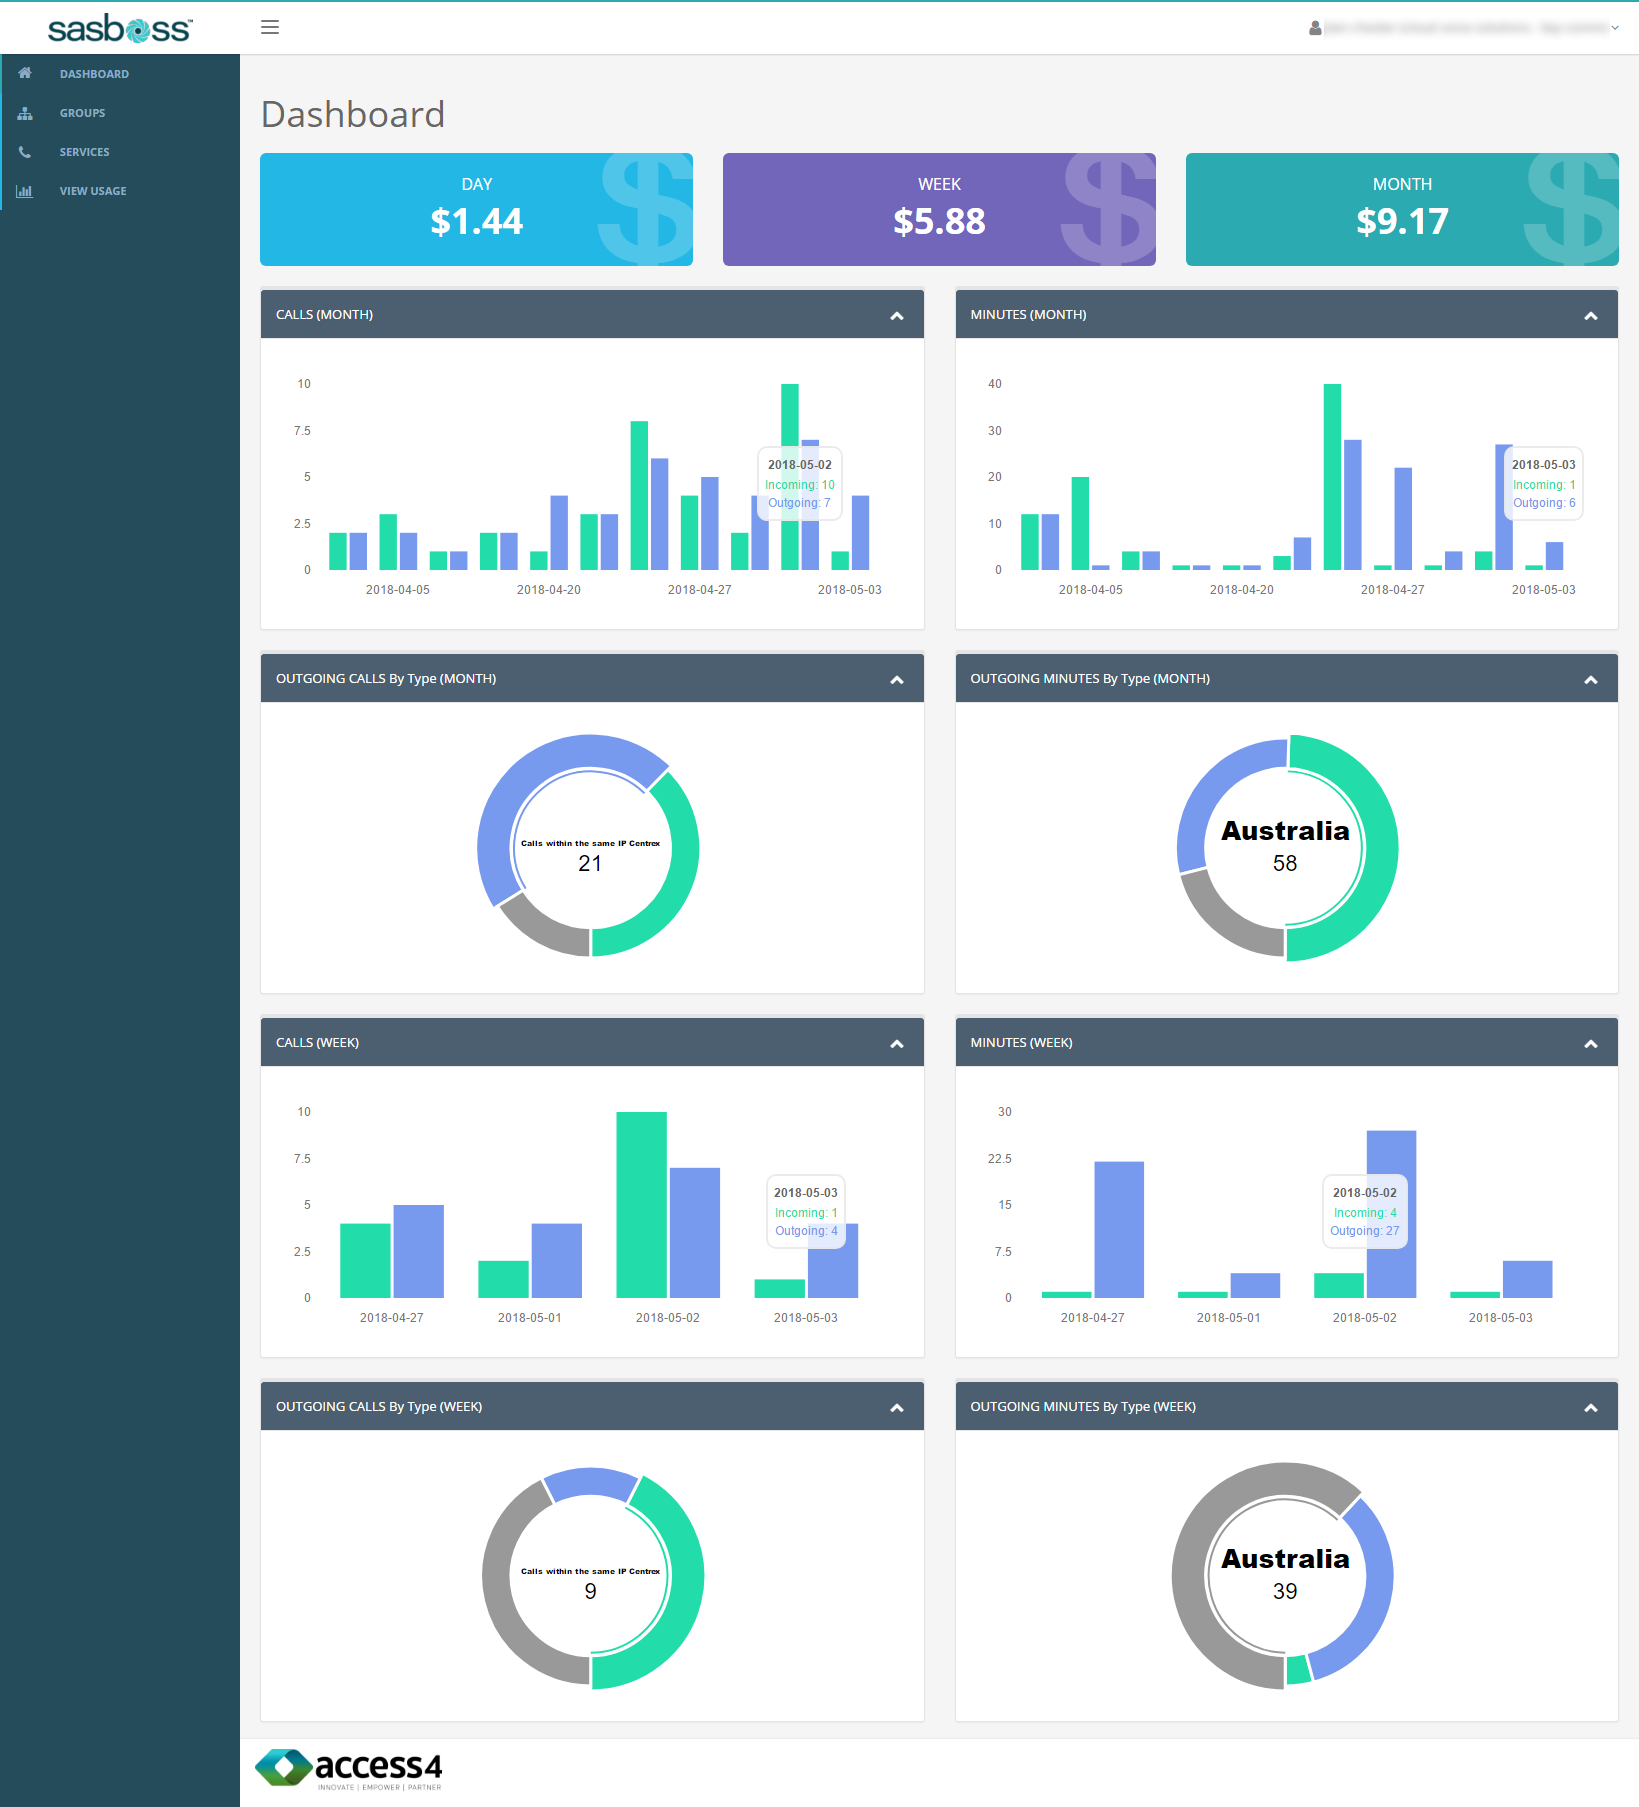 SASBOSS VoIP dashboard